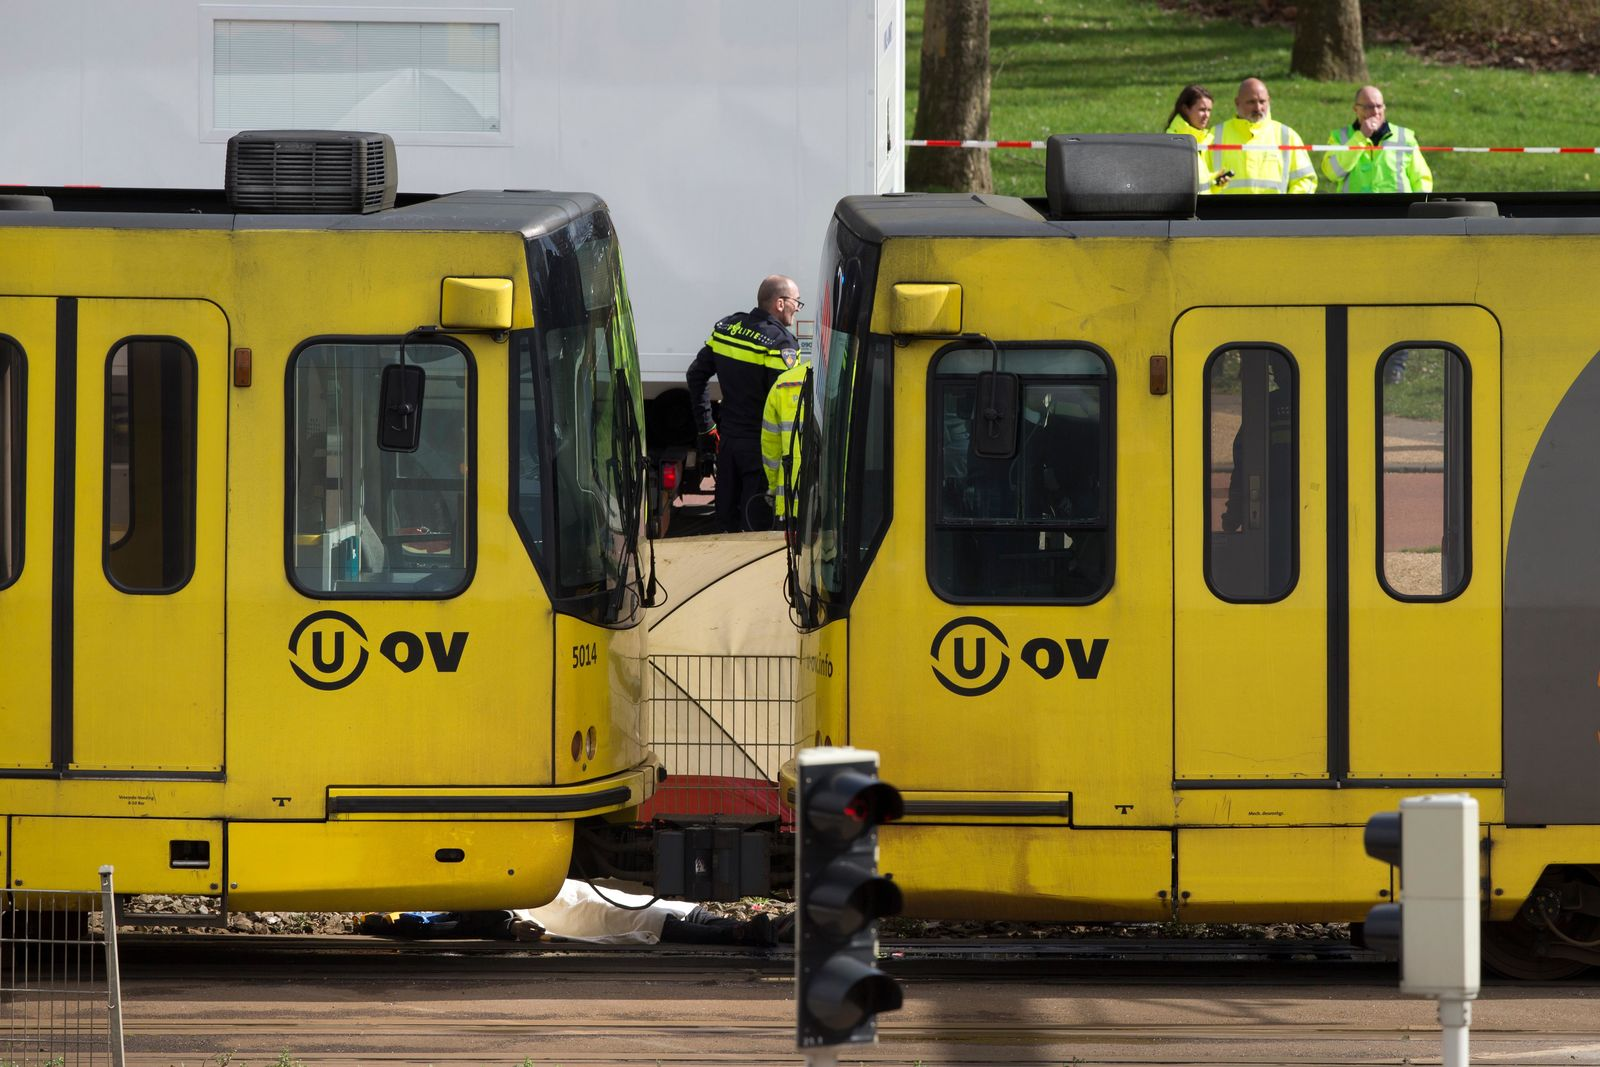 The body of one of three victims is covered with a white sheet as it lies next to a tram after a shooting incident in Utrecht, Netherlands, Monday, March 18, 2019. (AP Photo/Peter Dejong)